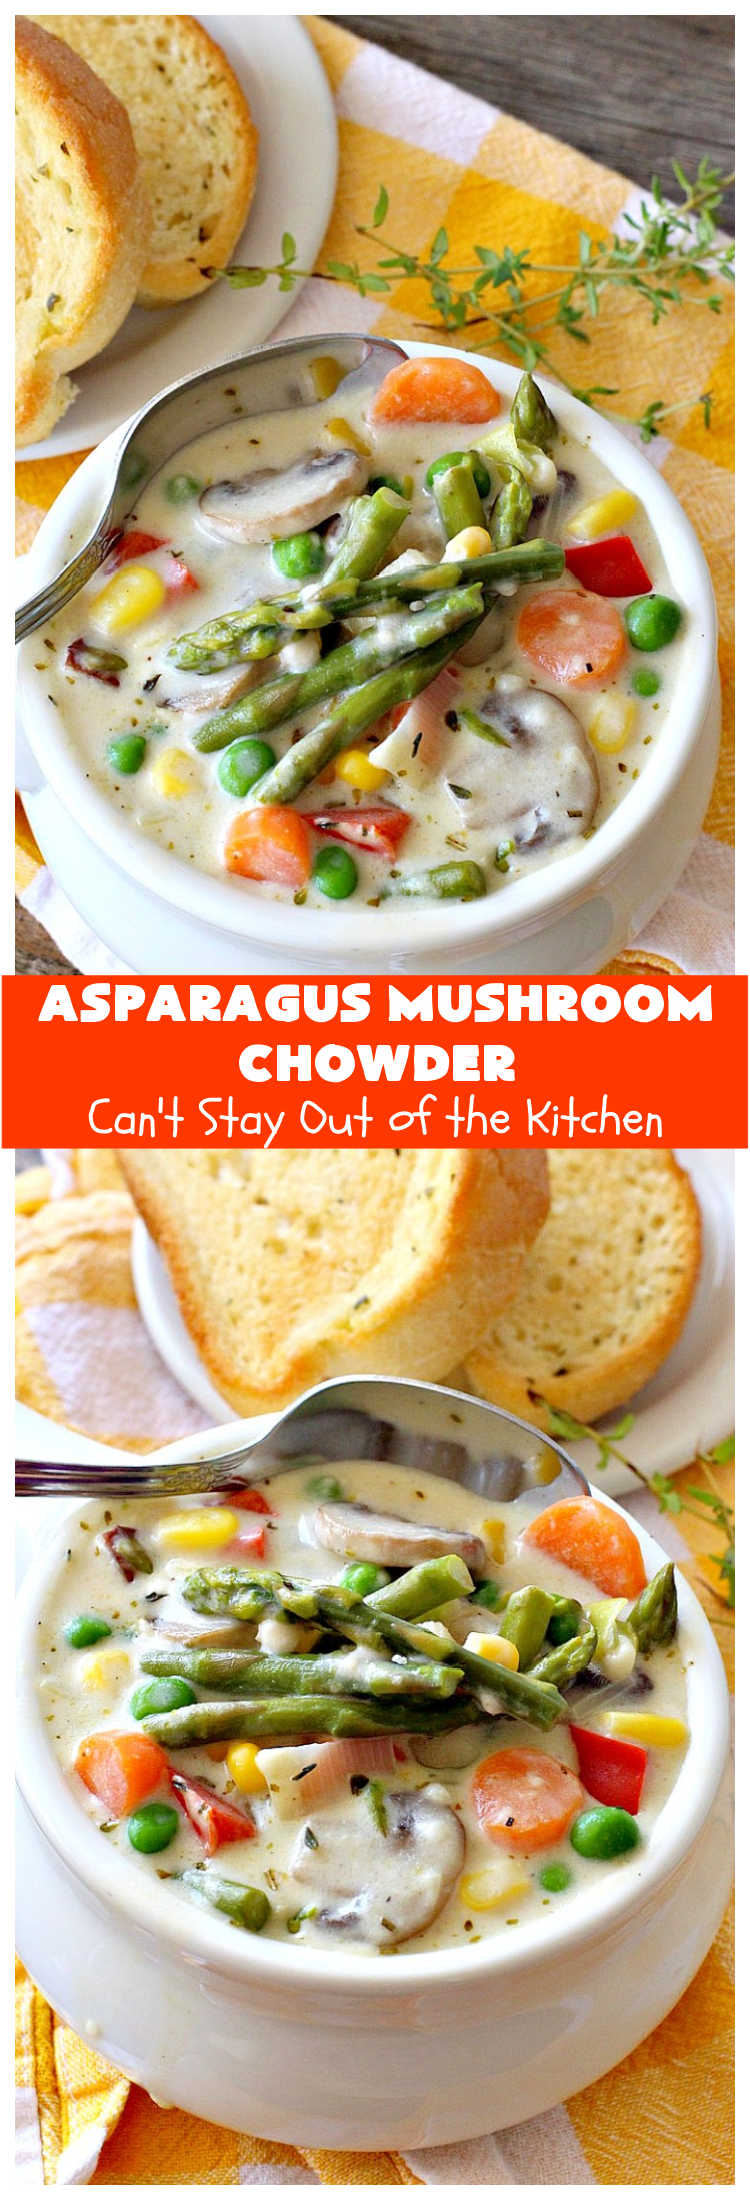 Asparagus Mushroom Chowder | Can't Stay Out of the Kitchen | this spectacular #chowder can be whipped up in 30 minutes. It's perfect for weeknight dinners. While this is a comfort food #recipe it's chocked full of #healthy veggies. Mouthwatering & irresistible! #soup #asparagus #mushrooms #potatoes #carrots #corn #GlutenFree #AsparagusMushroomChowder